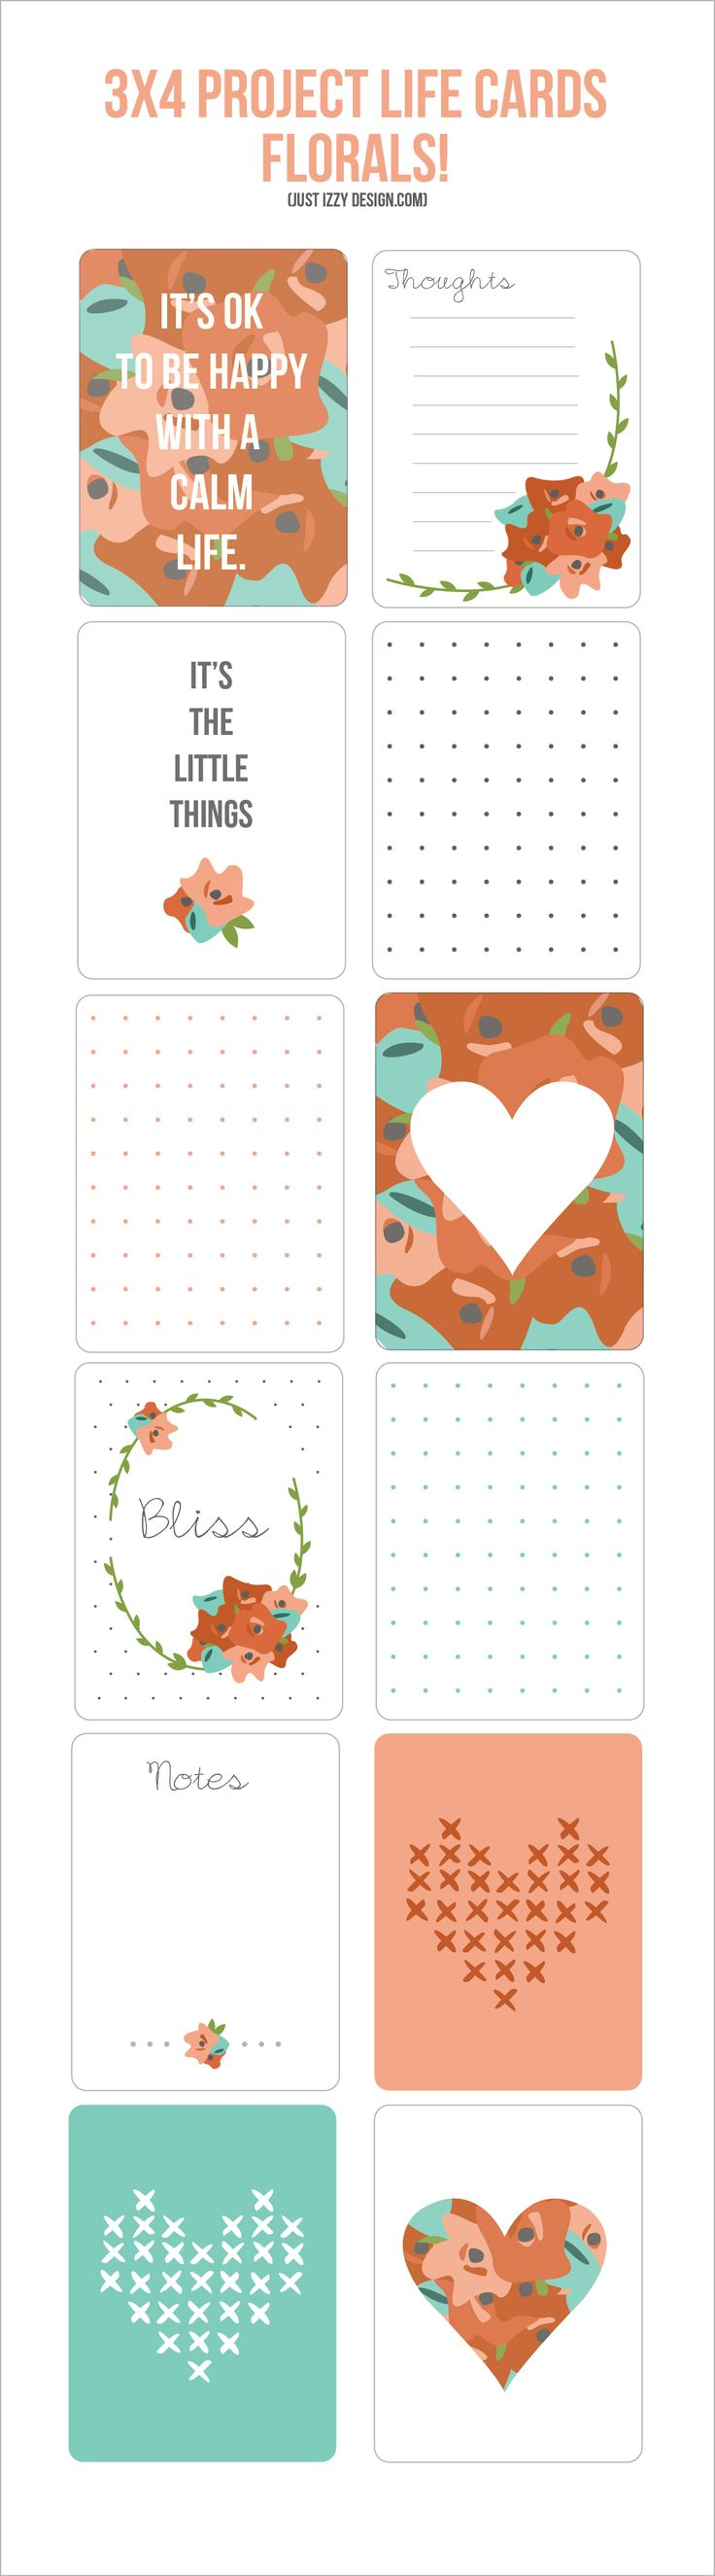 3x4 Project Life Cards #freeprintables #freeprintable #projectlife